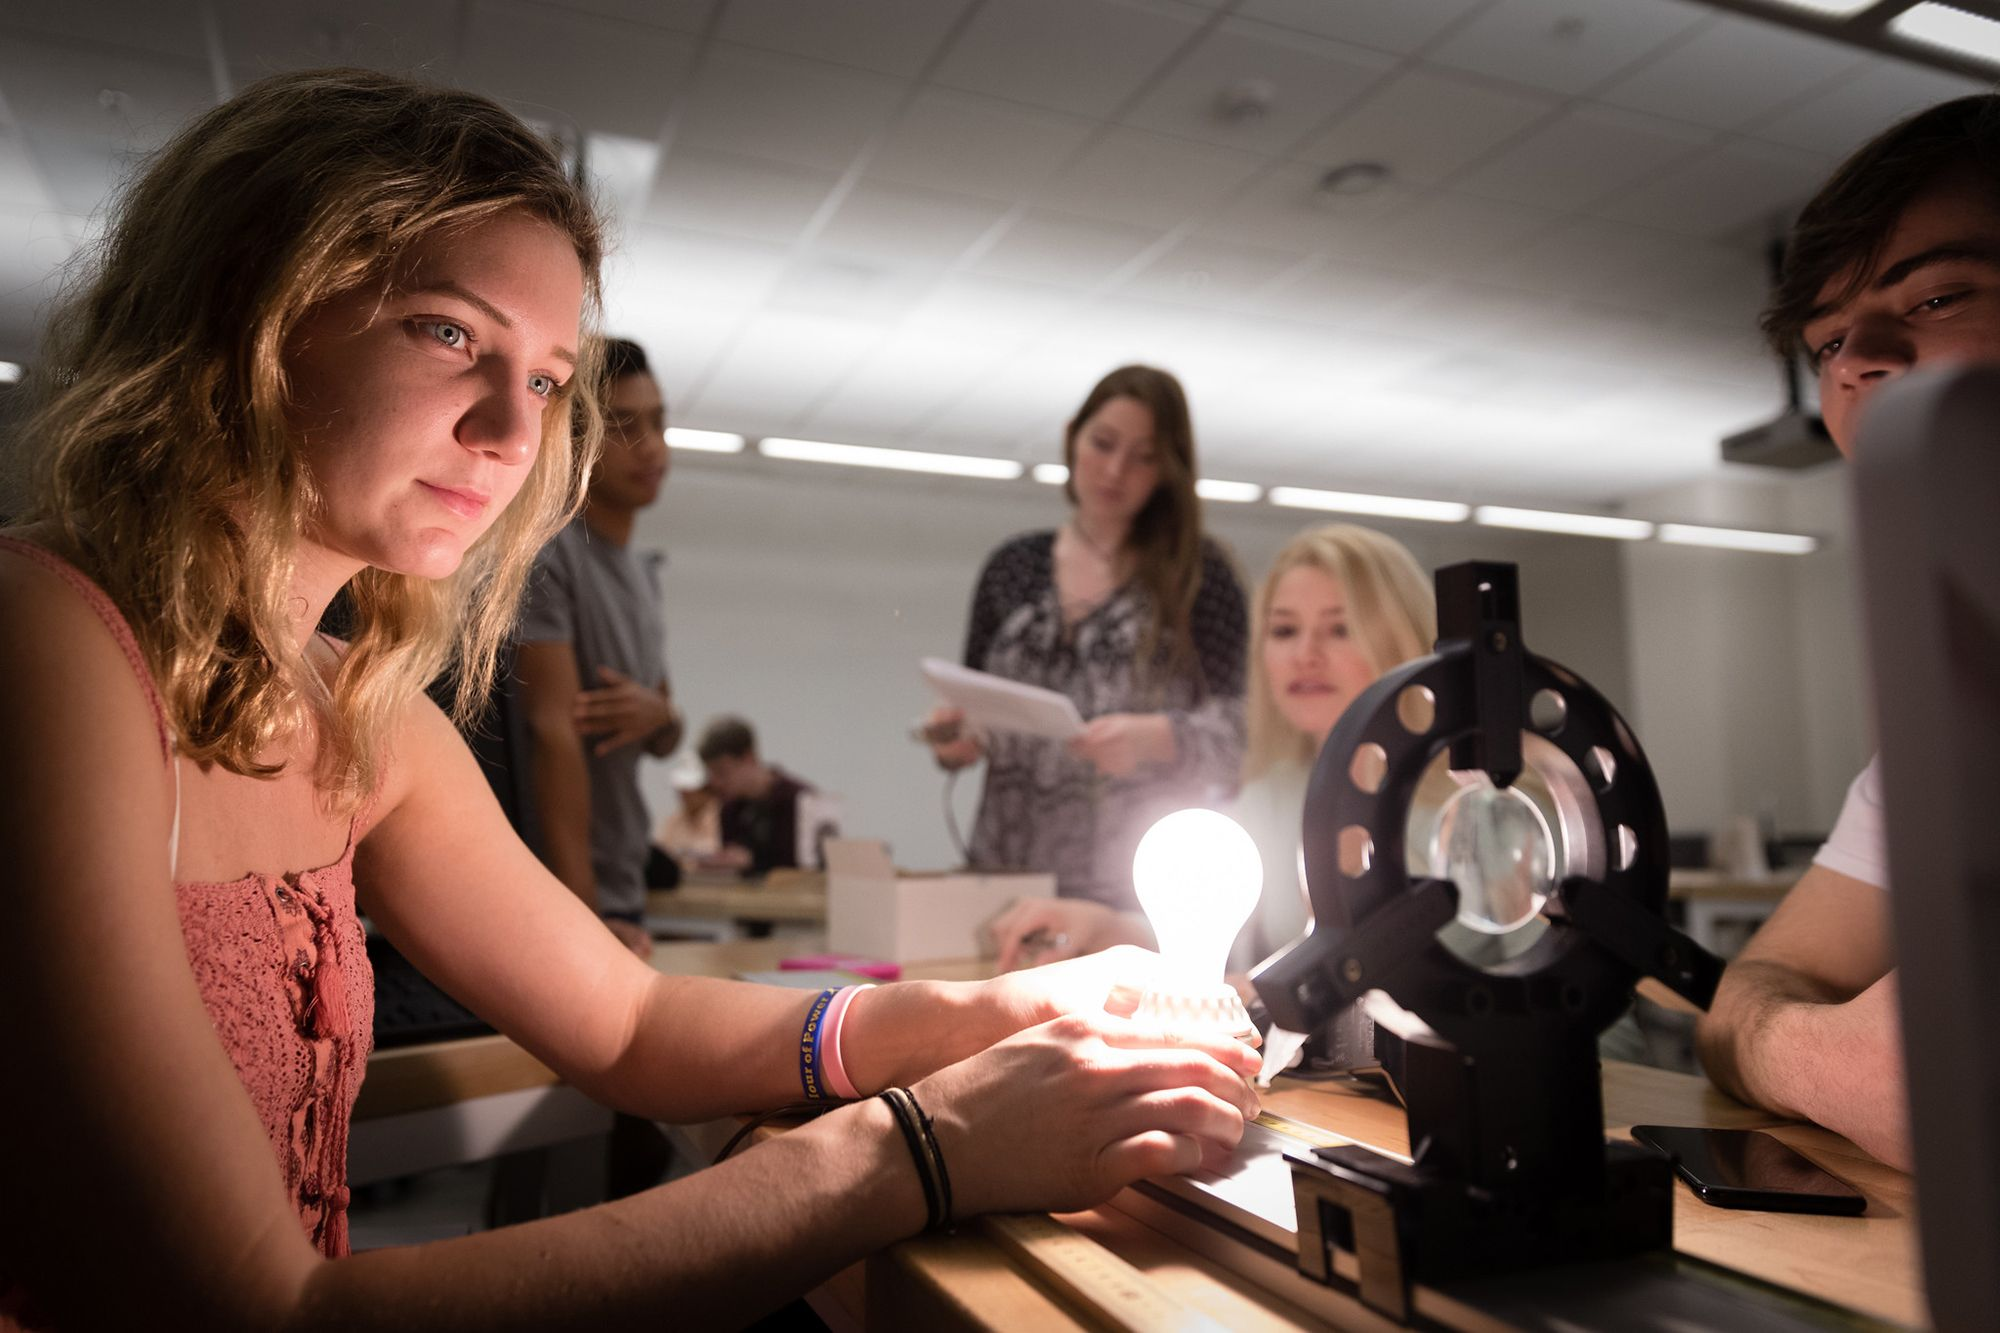 Students conduct an optics lab in a physics course.